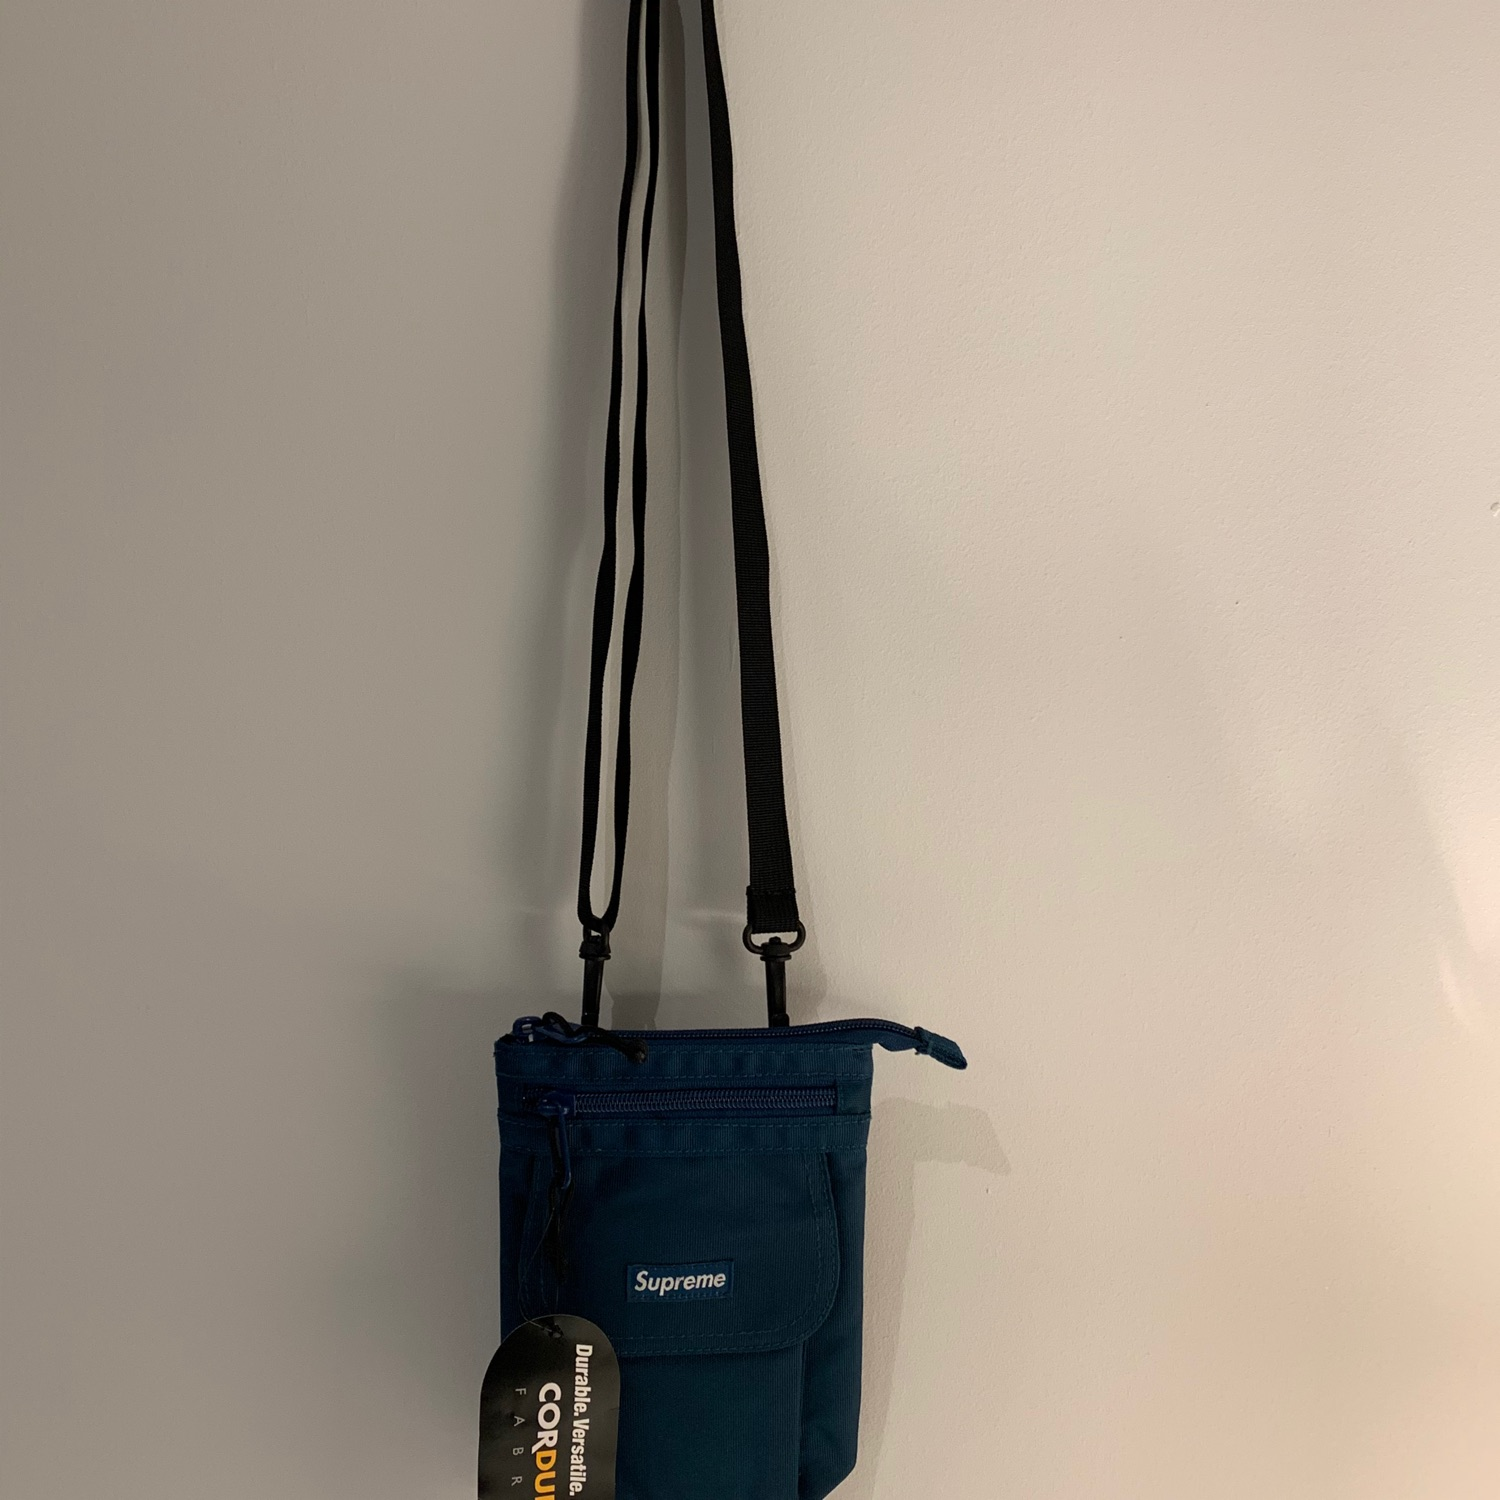 Supreme Shoulder Bag Fw19 Teal